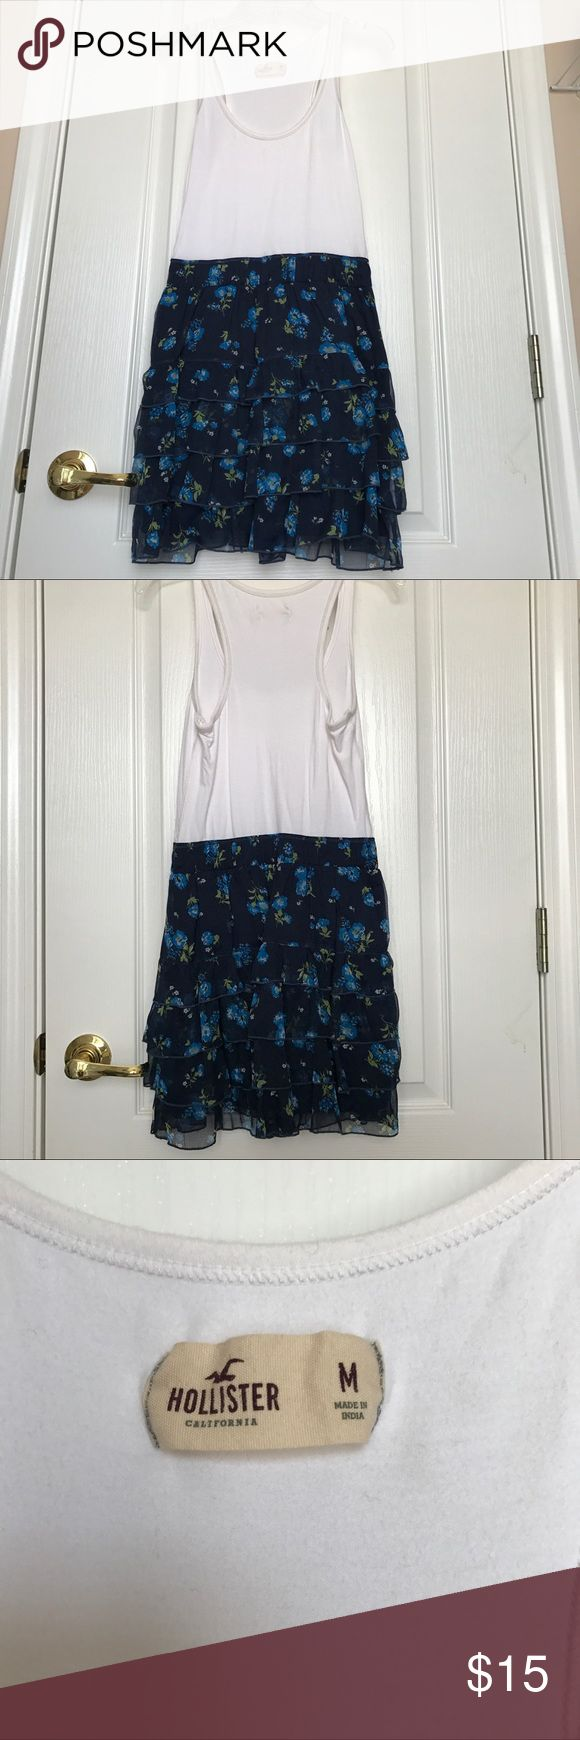 Hollister Dress Hollister dress, great condition, and is in size medium Hollister Dresses Strapless